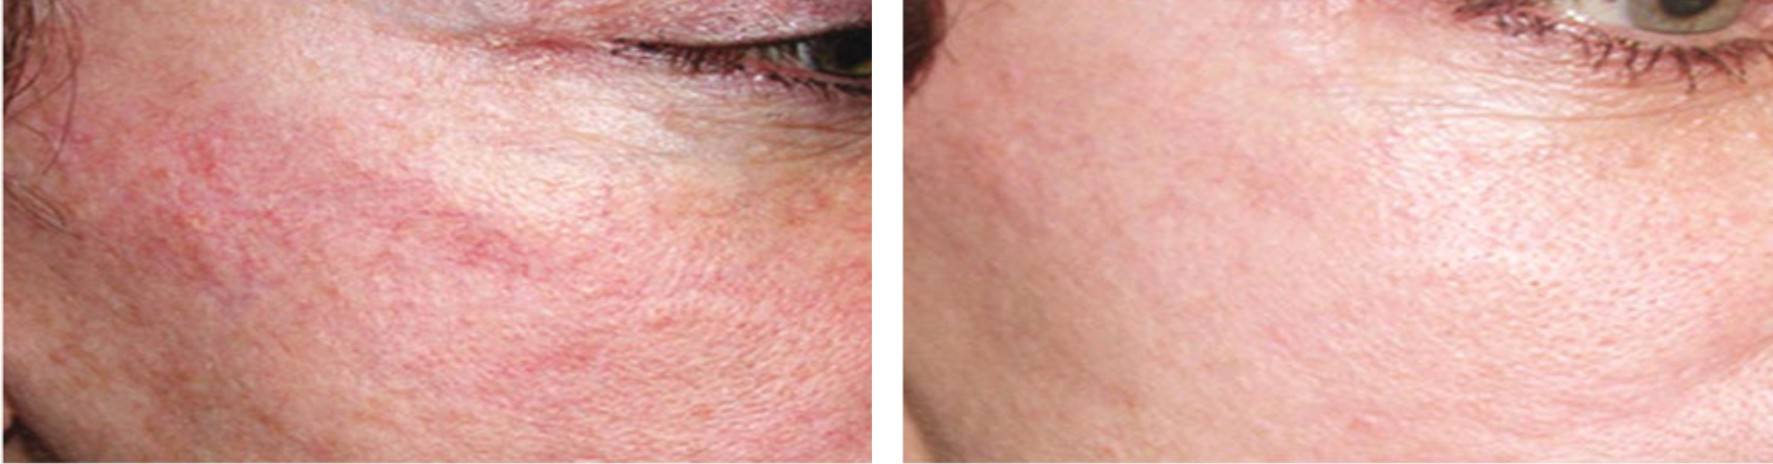 Laser Skin Rejuvenation Image Three